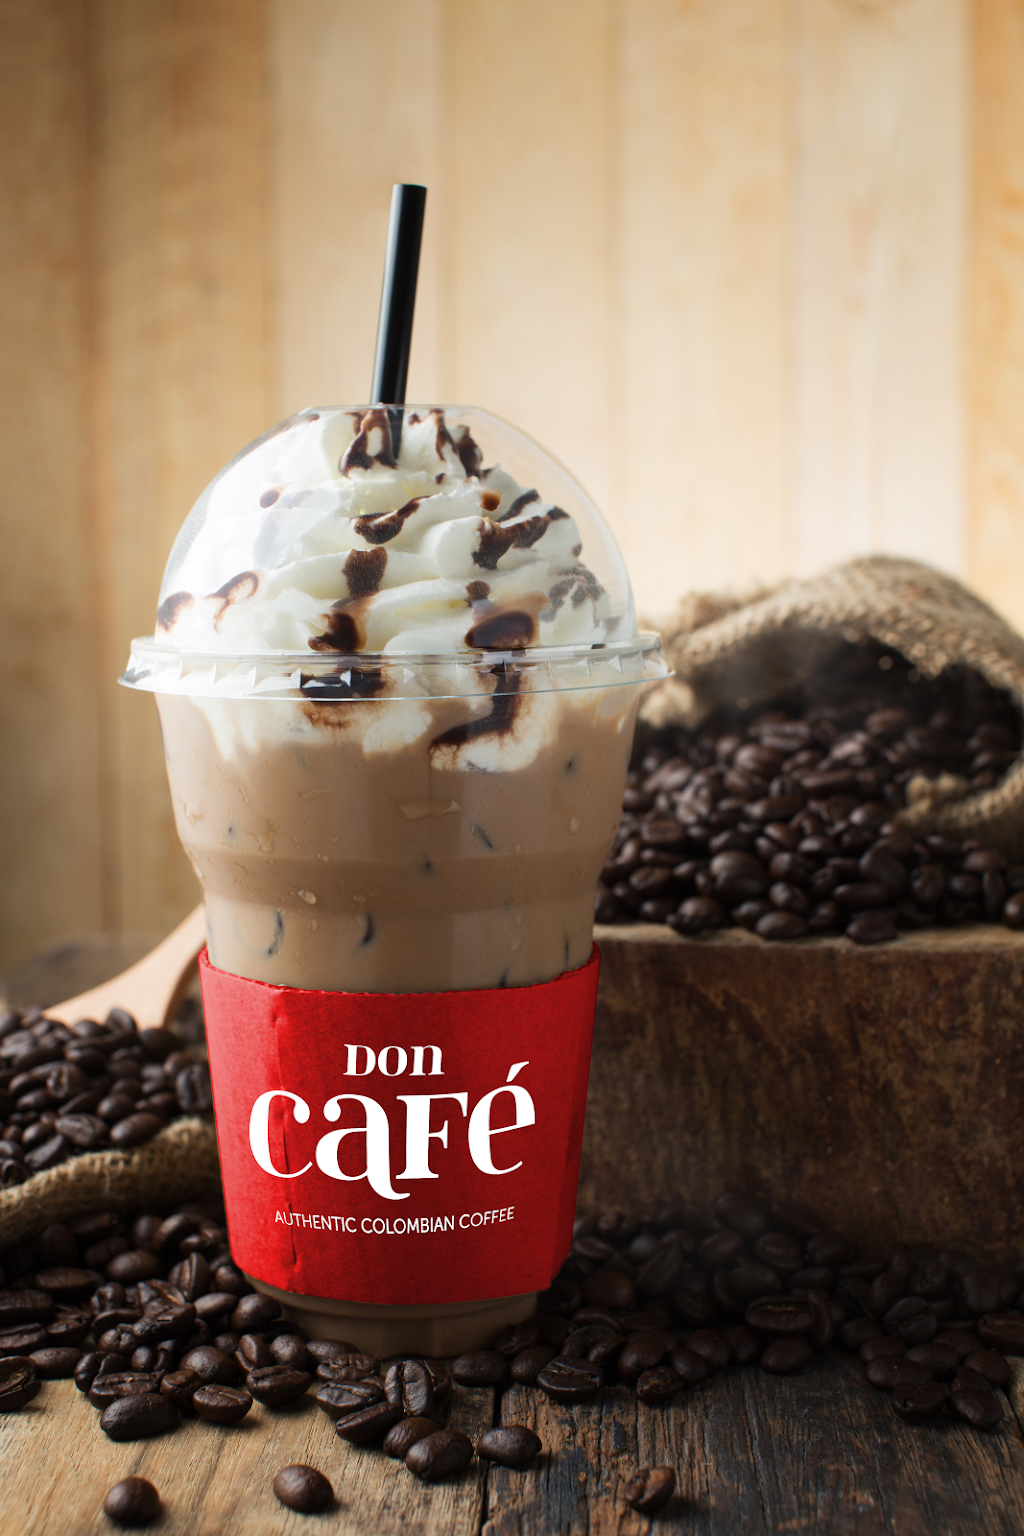 Don Cafe Products - cafe  | Photo 7 of 10 | Address: W 59th St & West Dr, New York, NY 10019, USA | Phone: (917) 617-0606